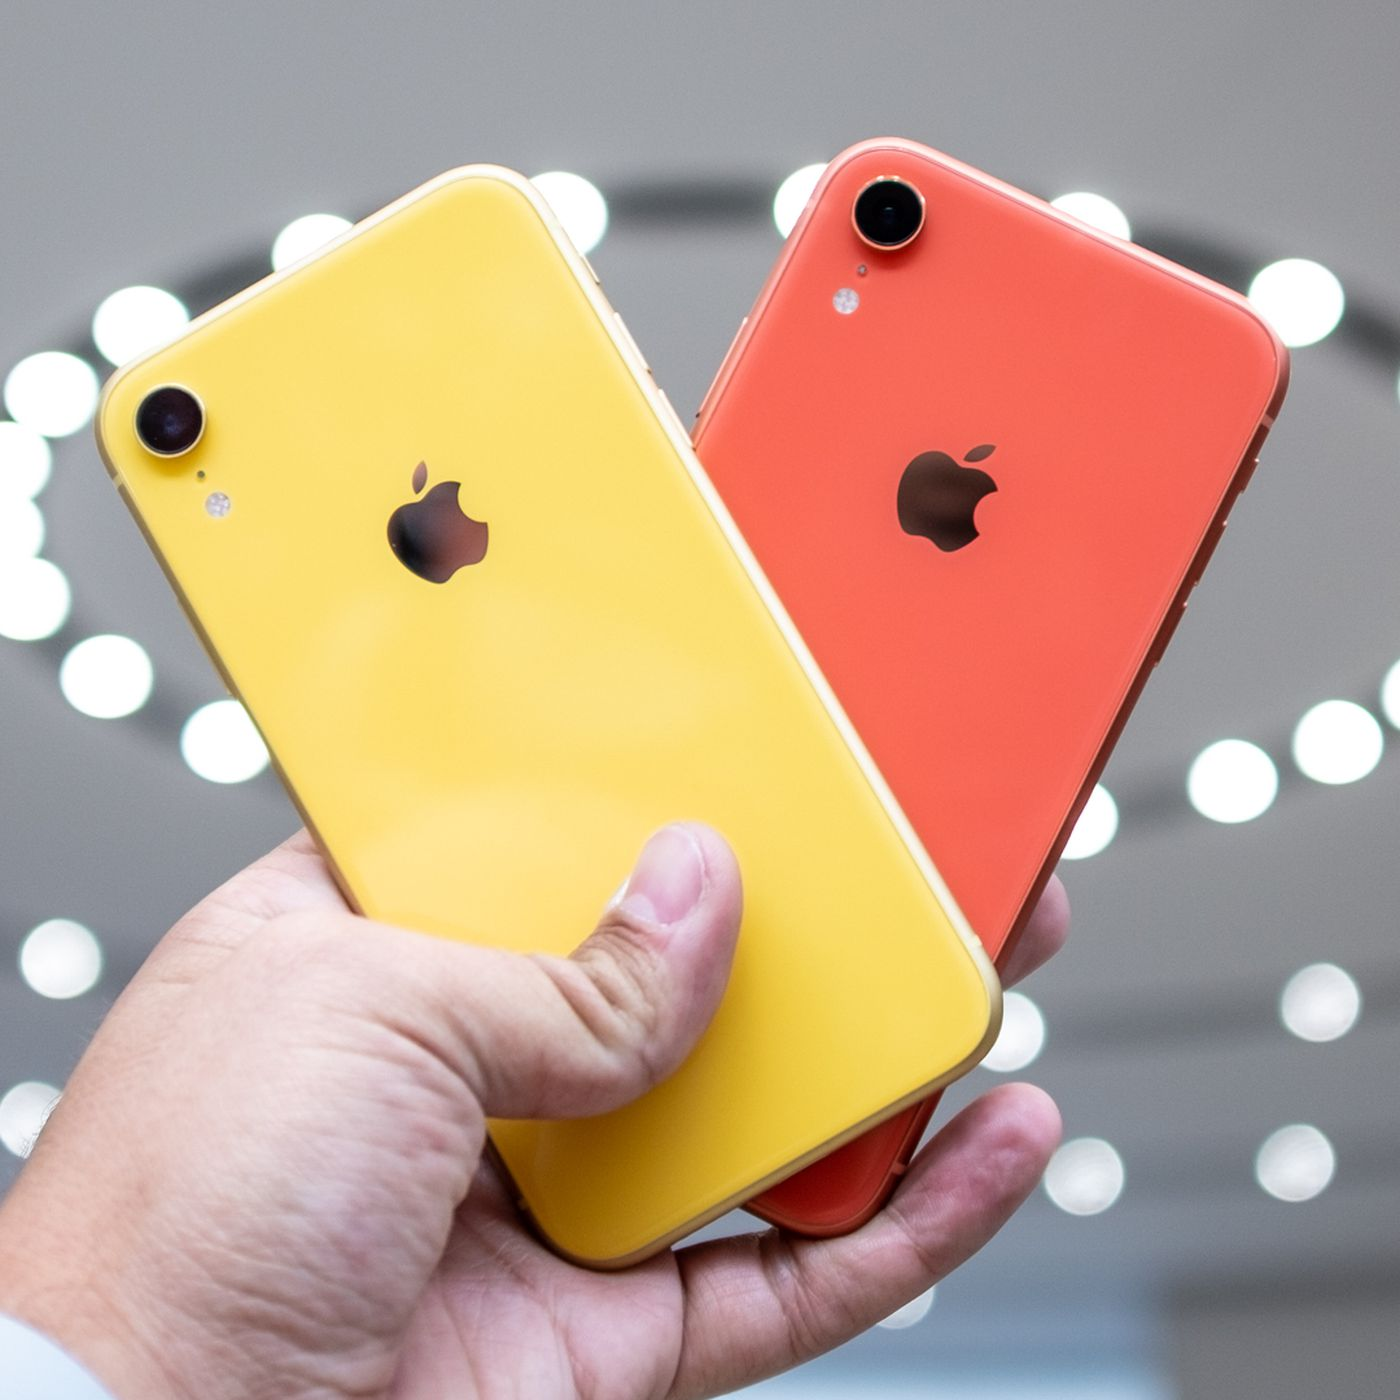 7fd21e80178 Apple iPhone XR hands-on: the new default iPhone - The Verge